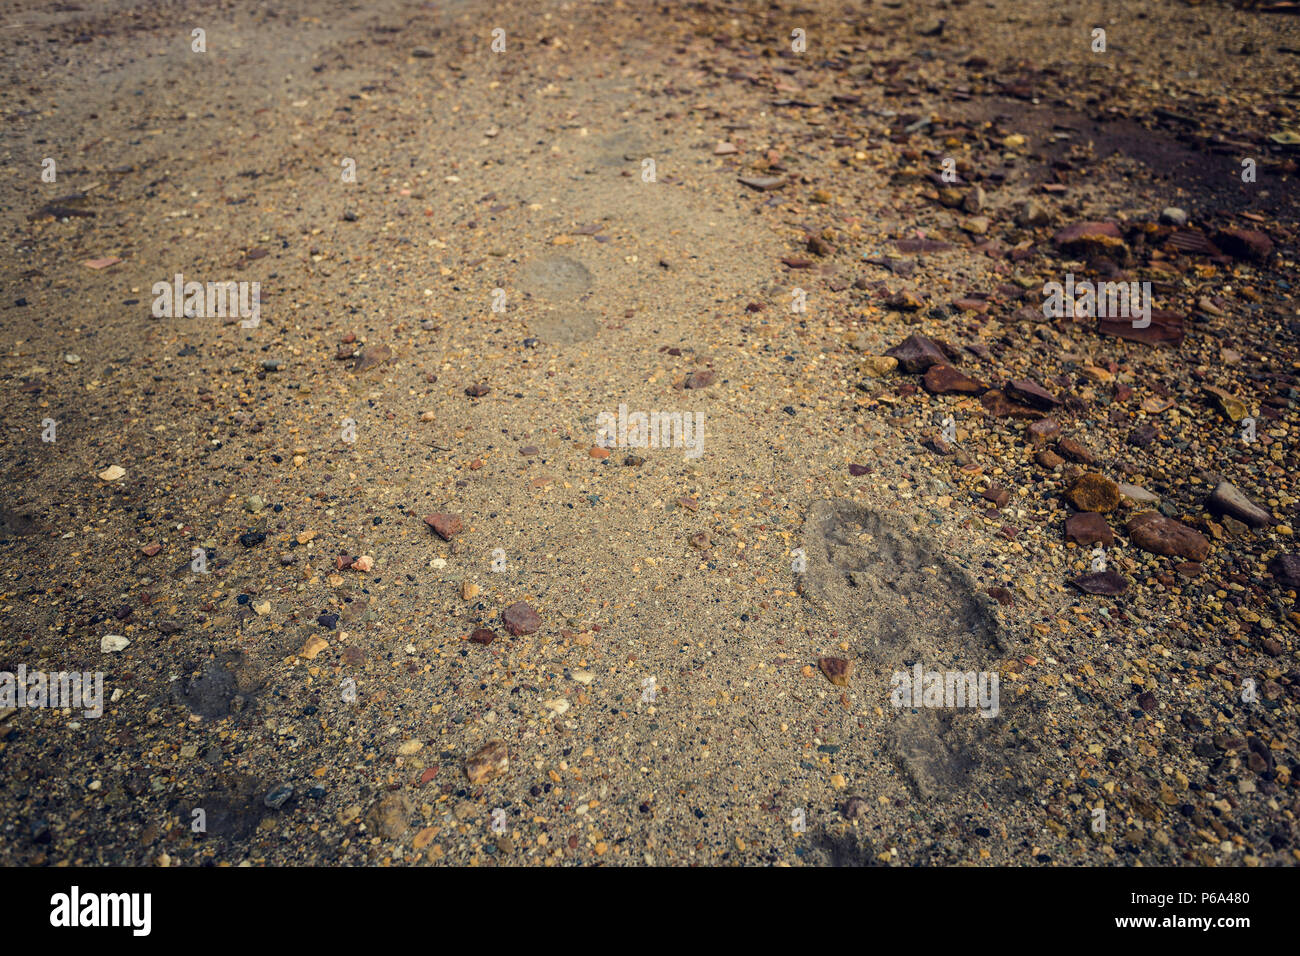 Footprint on the earth and stones in the mining landscape in the Zaranda mine, Spain - Stock Image